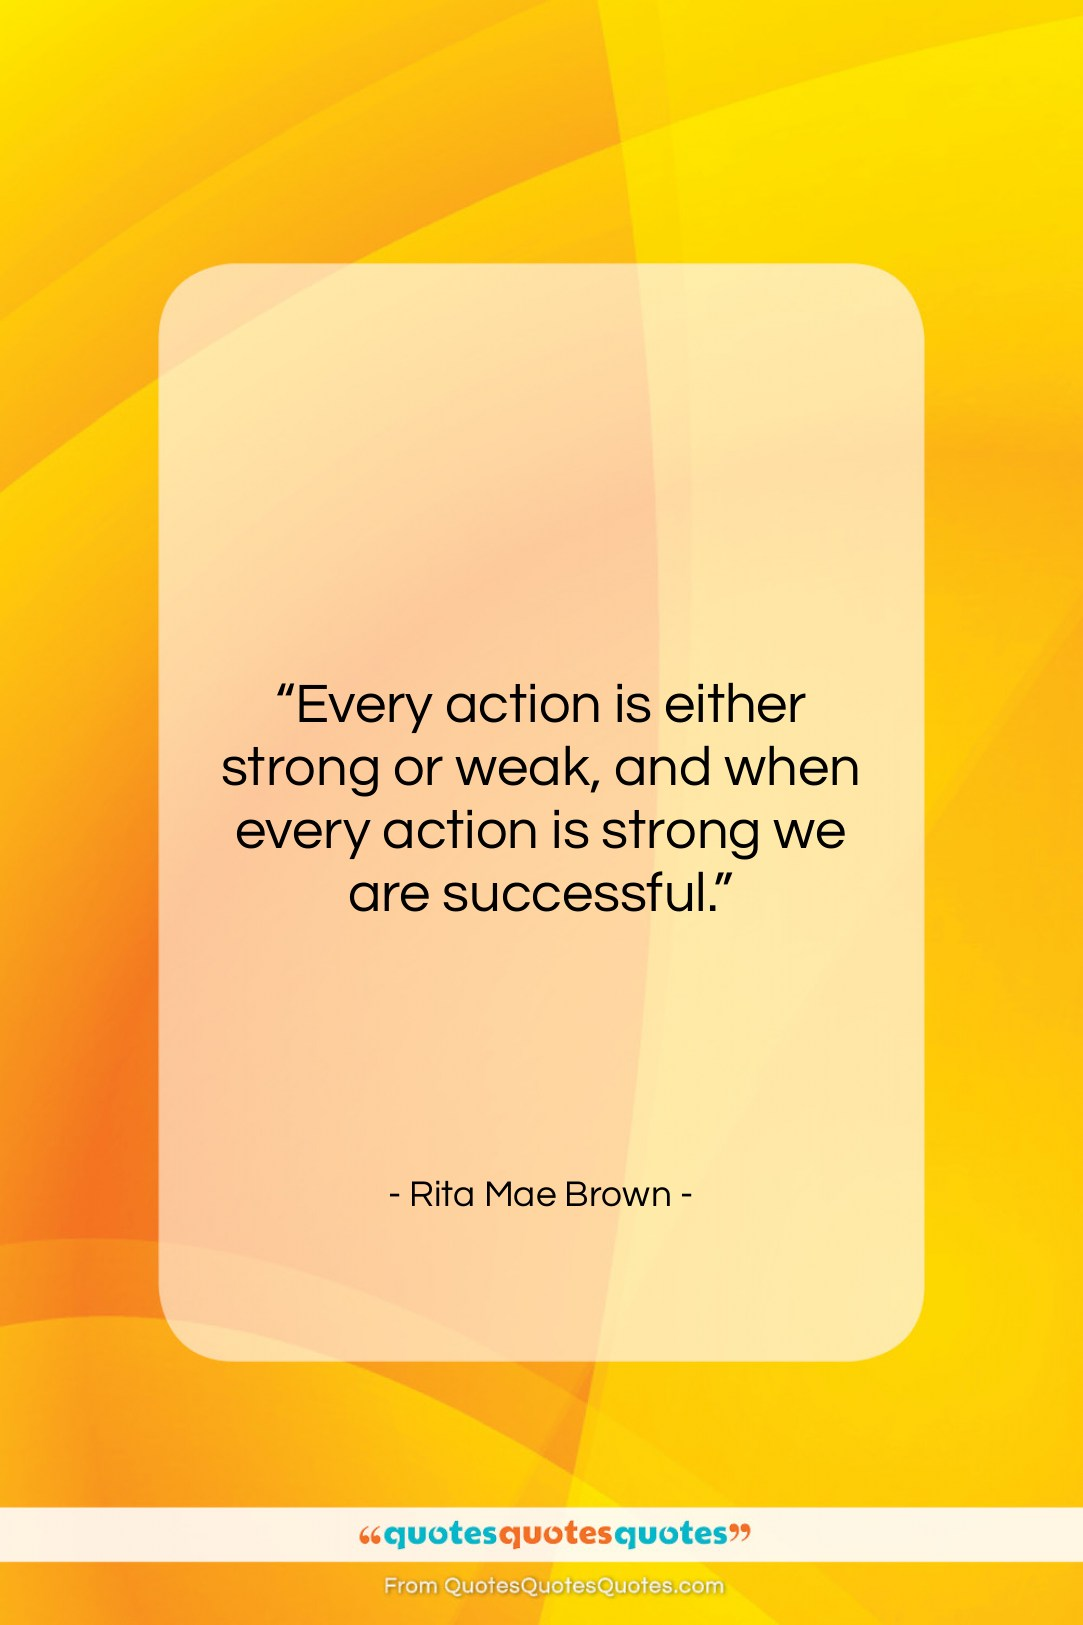 """Rita Mae Brown quote: """"Every action is either strong or weak,…""""- at QuotesQuotesQuotes.com"""